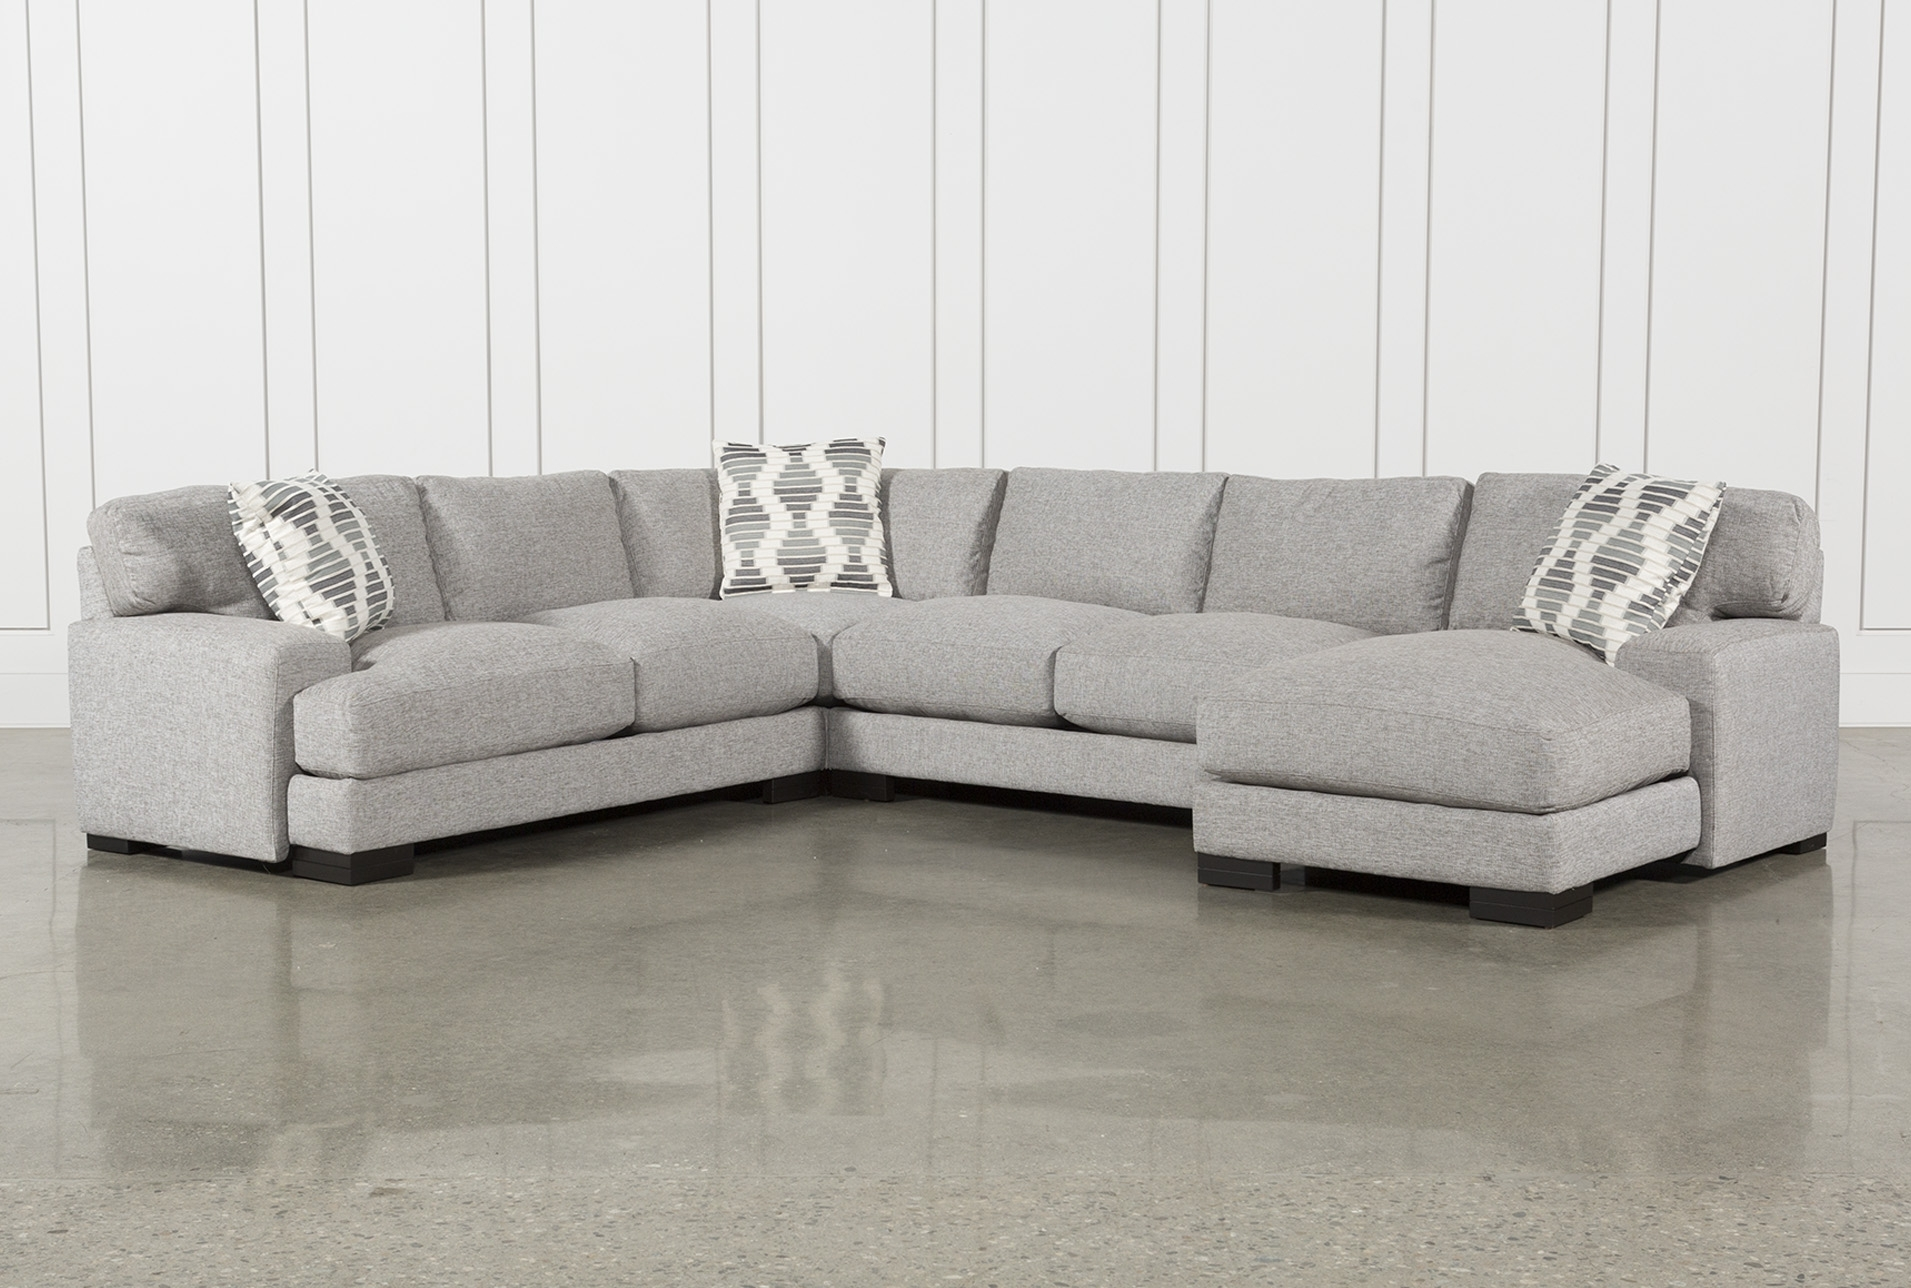 Harper Foam 3 Piece Sectional W/raf Chaise Intended For Aquarius Light Grey 2 Piece Sectionals With Raf Chaise (View 15 of 25)